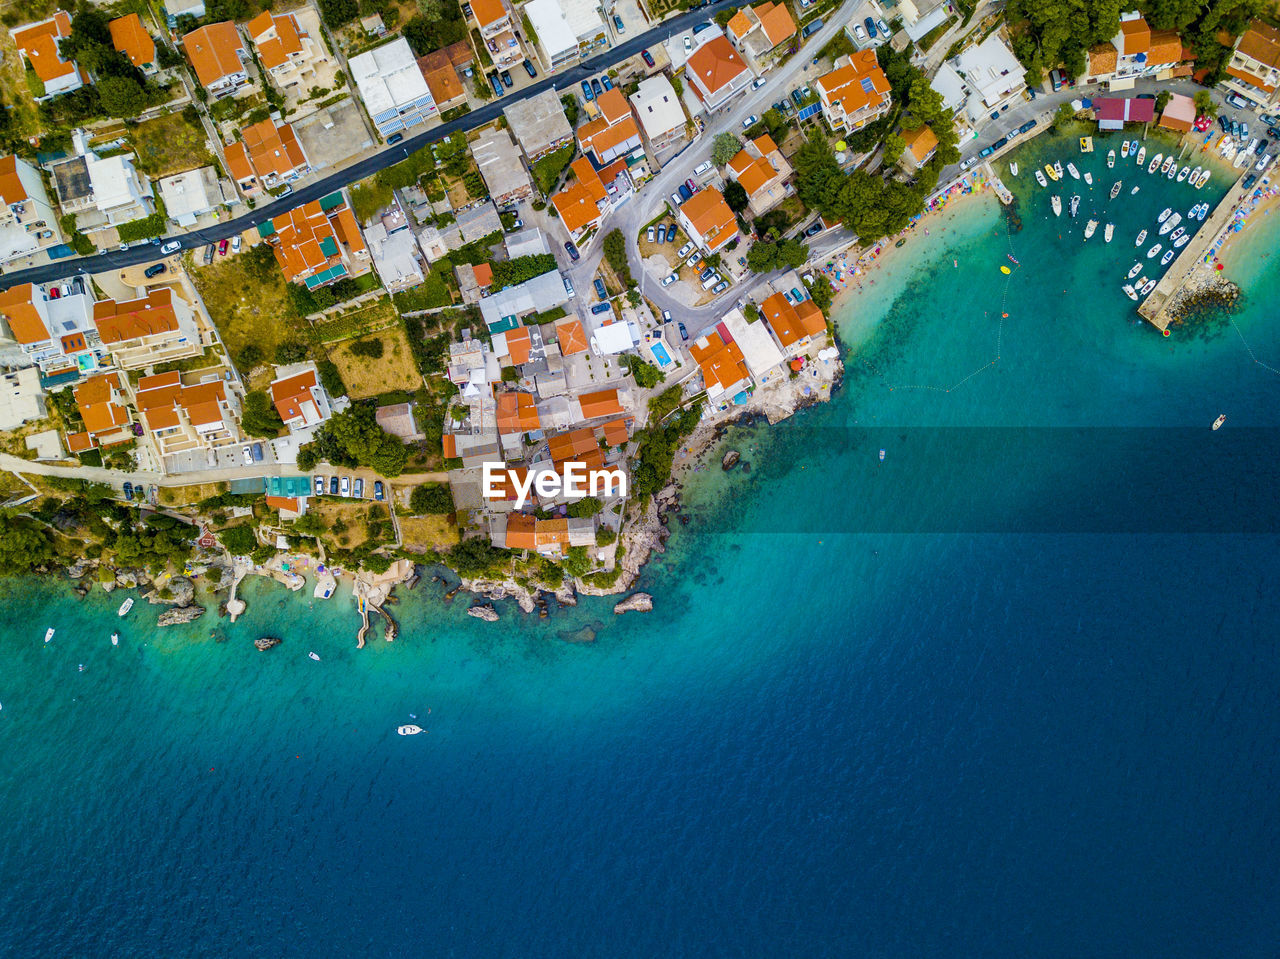 Aerial View Of Houses In Town By Sea